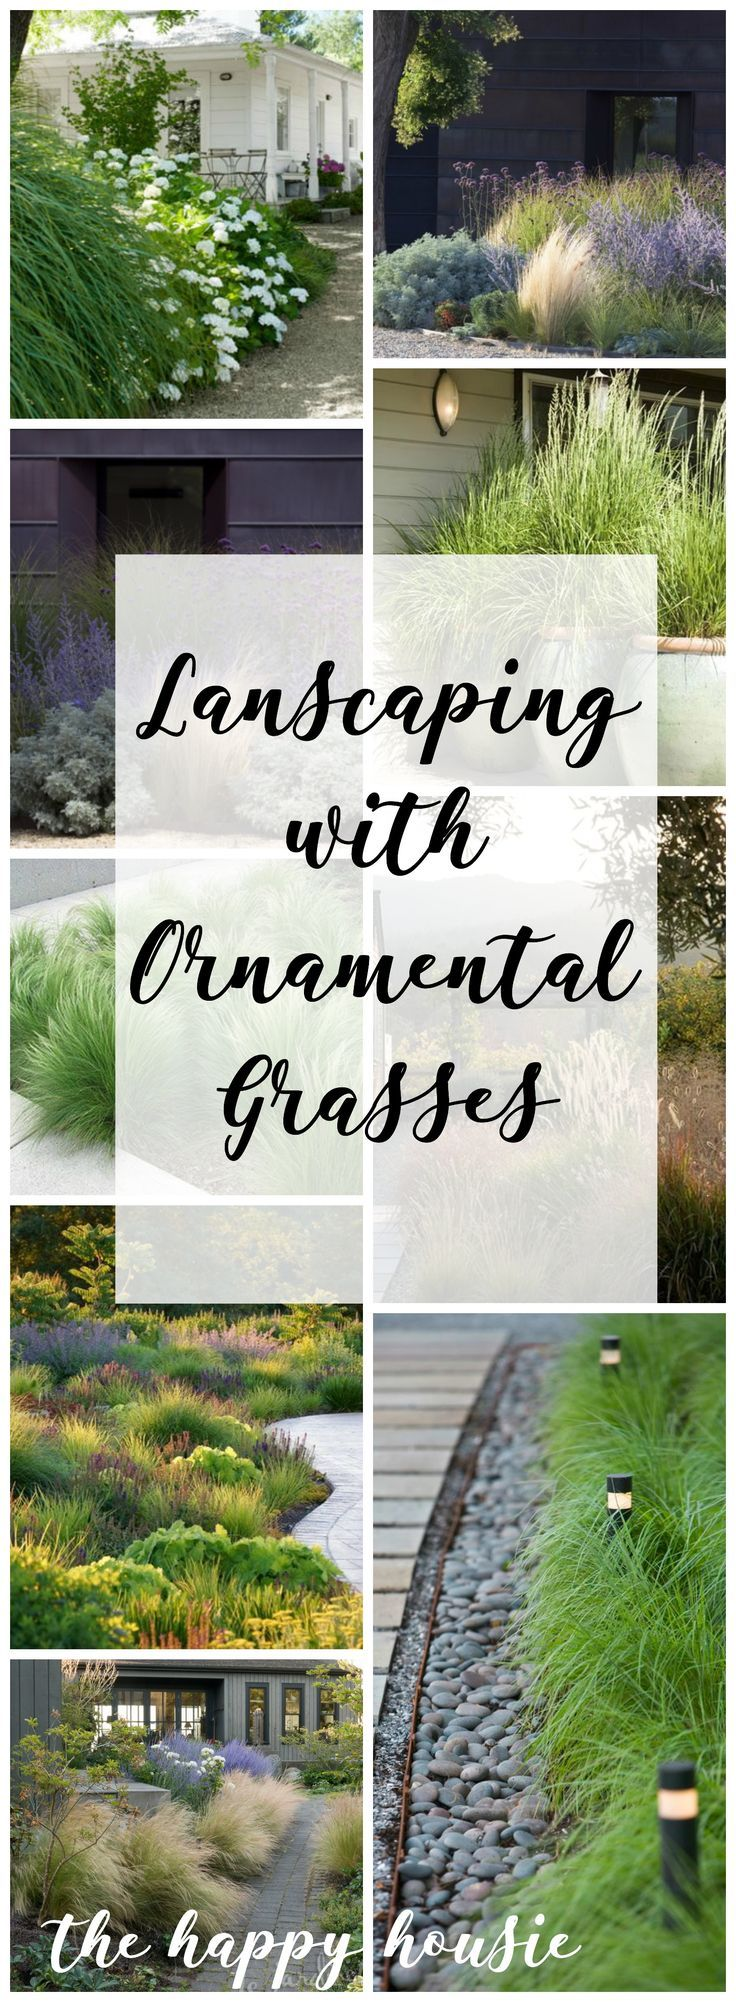 Landscaping with Ornamental Grasses - The Happy Housie